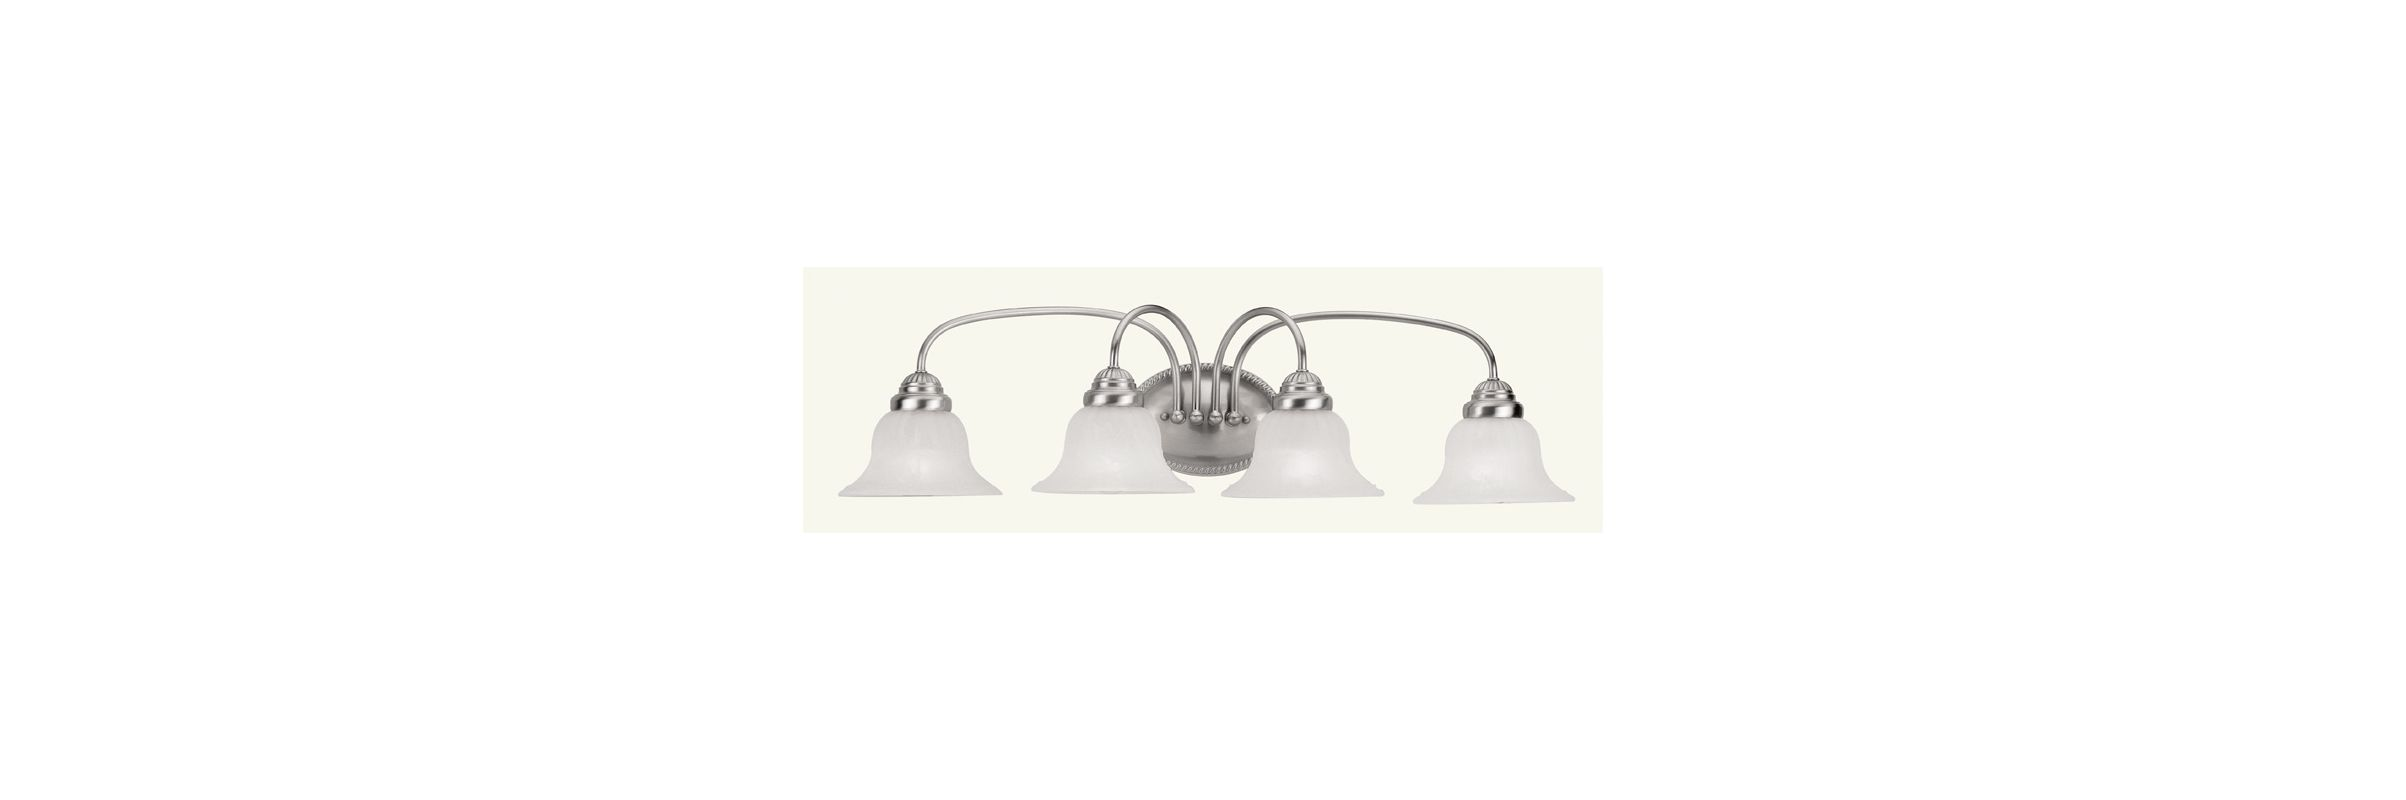 Livex Lighting 1534-91 Brushed Nickel Edgemont Bathroom Vanity Bar with 4 Lights ...